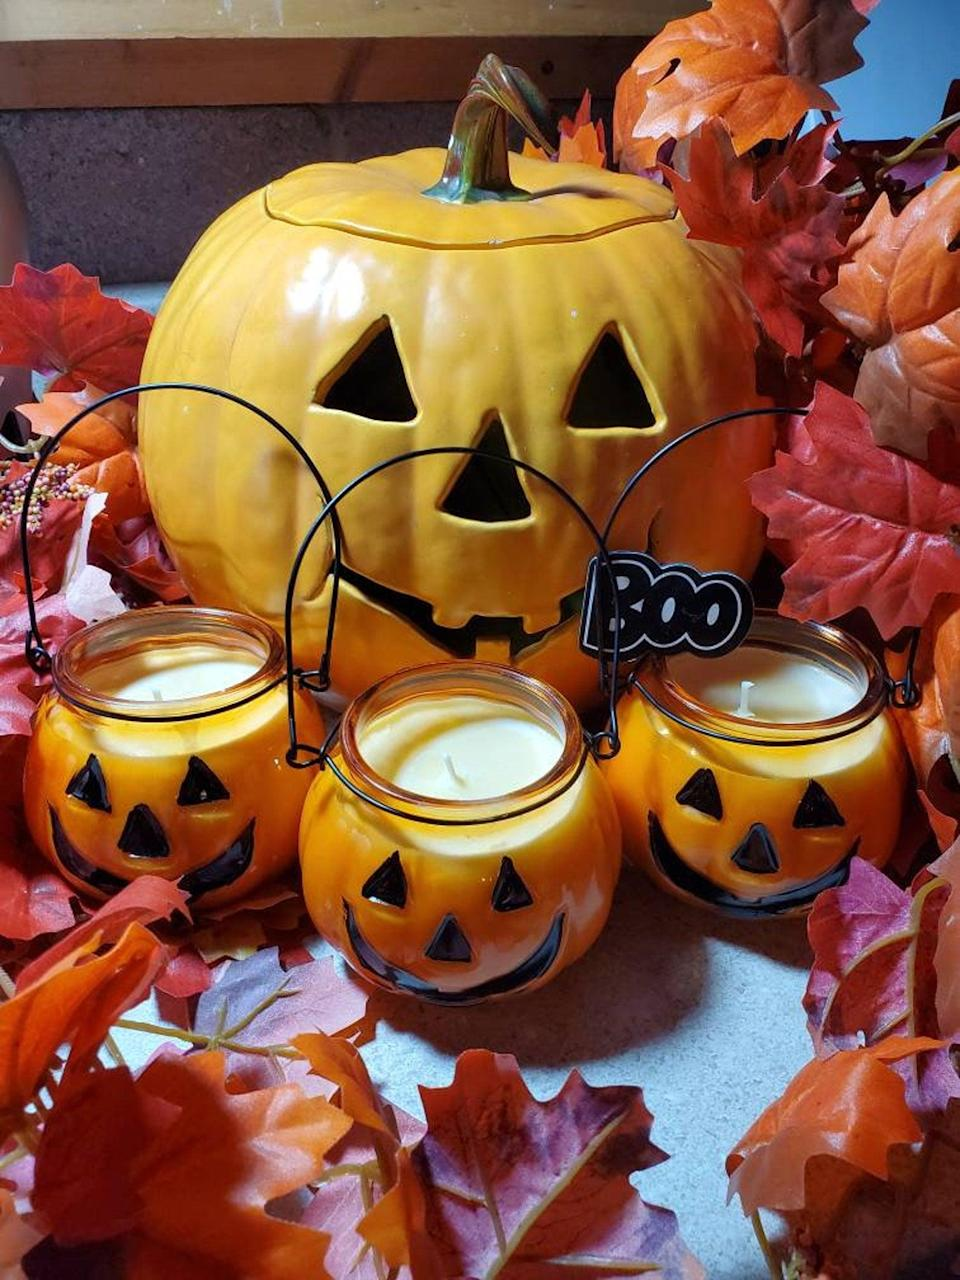 <p>Available on Etsy, these <span>Pumpkin Jack O'Lantern Candles</span> ($18) double as decor and as a fall-scented air freshener. Choose from an array of fall-themed aromas like toasted pumpkin, apple maple bourbon, and caramel pumpkin.</p>